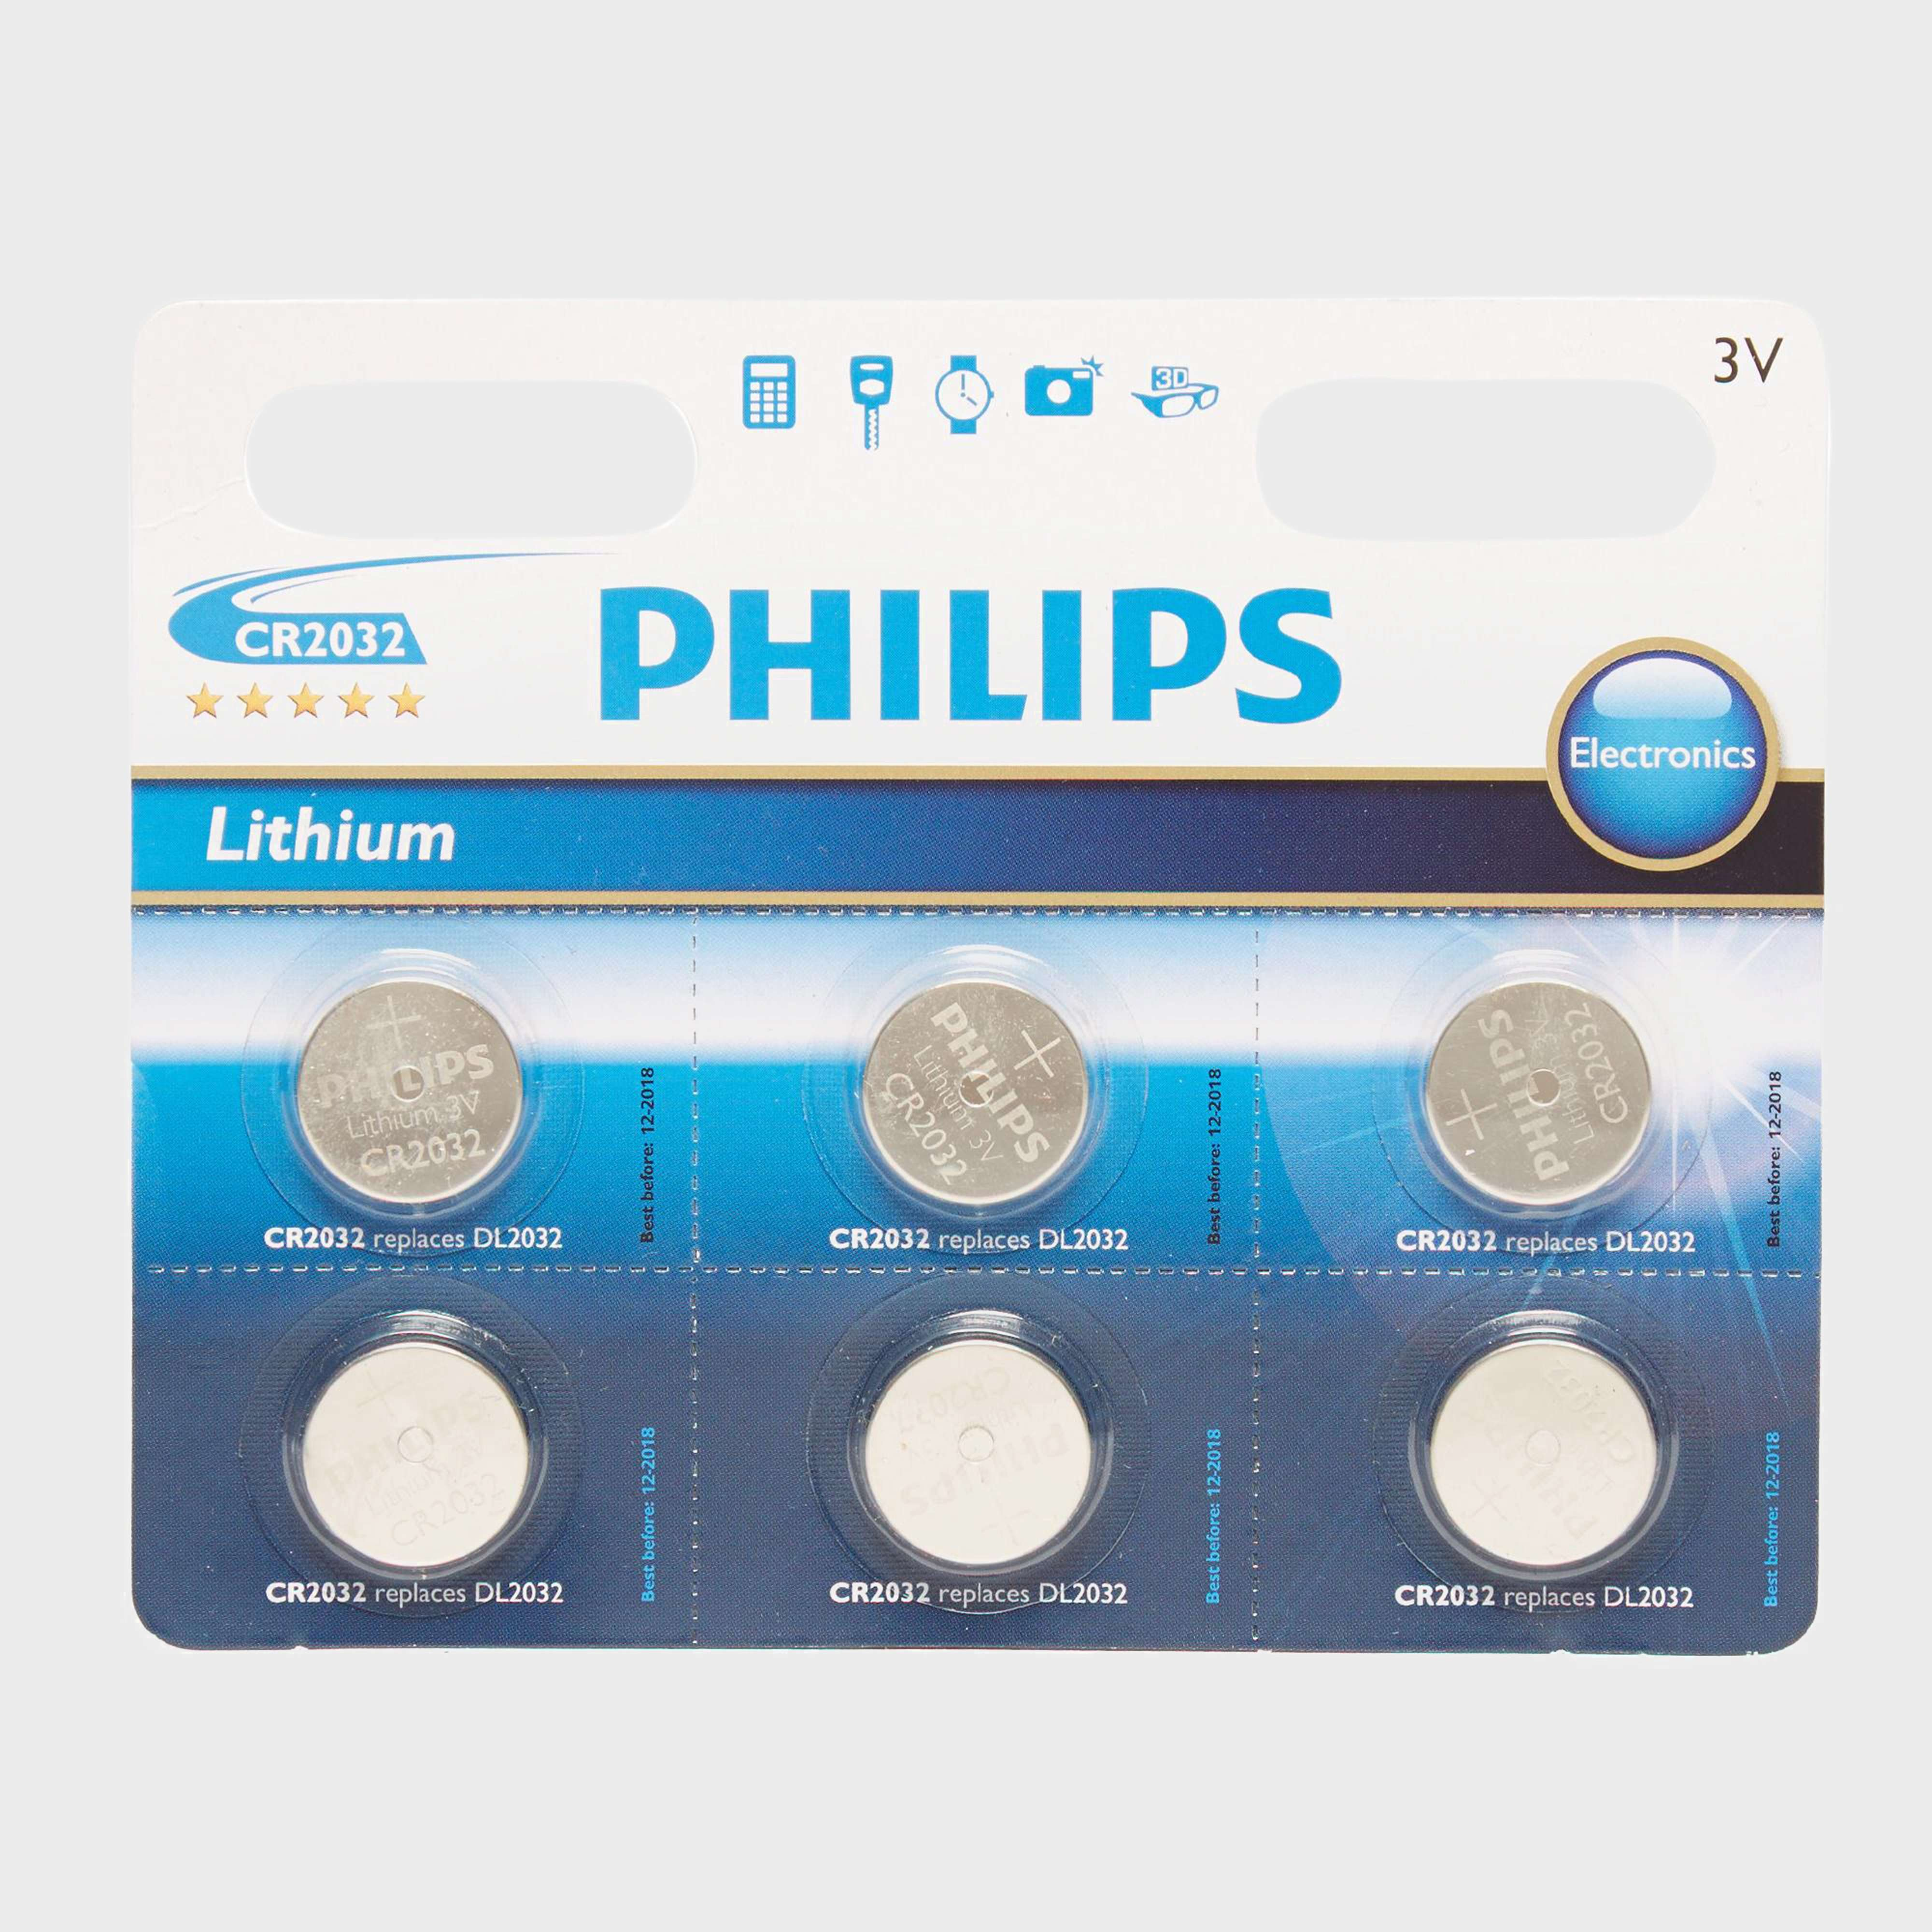 PHILLIPS Lithium Coin Watch Batteries CR2032 6 Pack